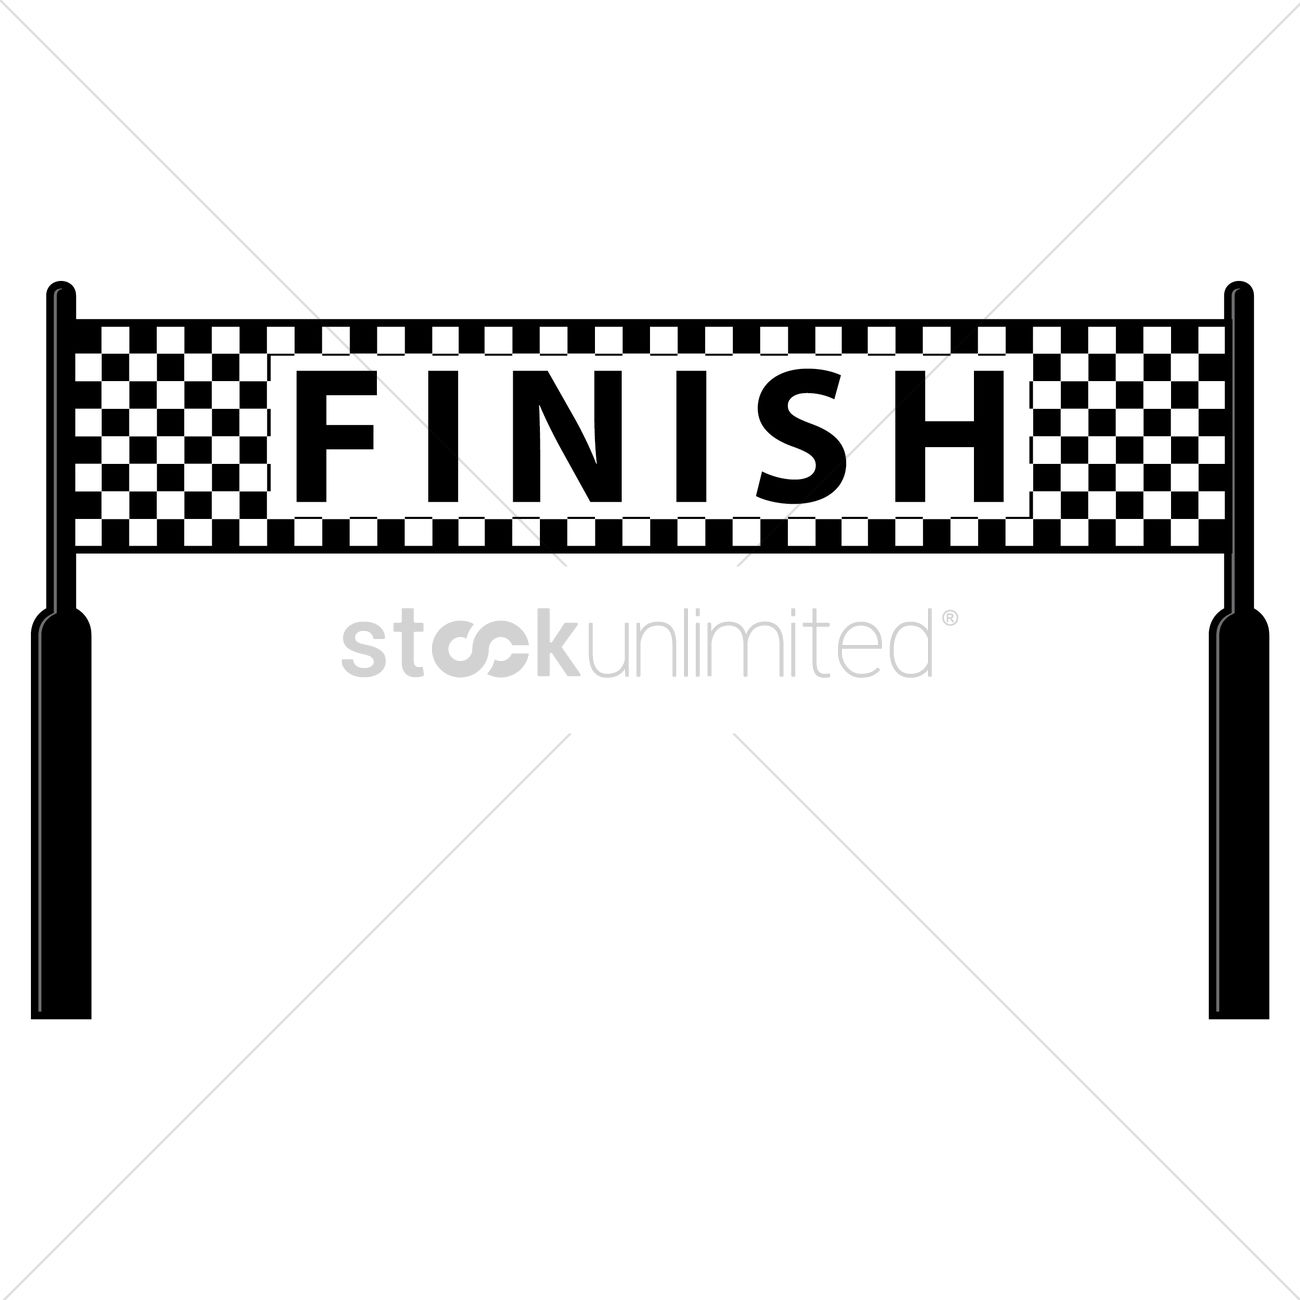 Finish line clipart 12 » Clipart Station.